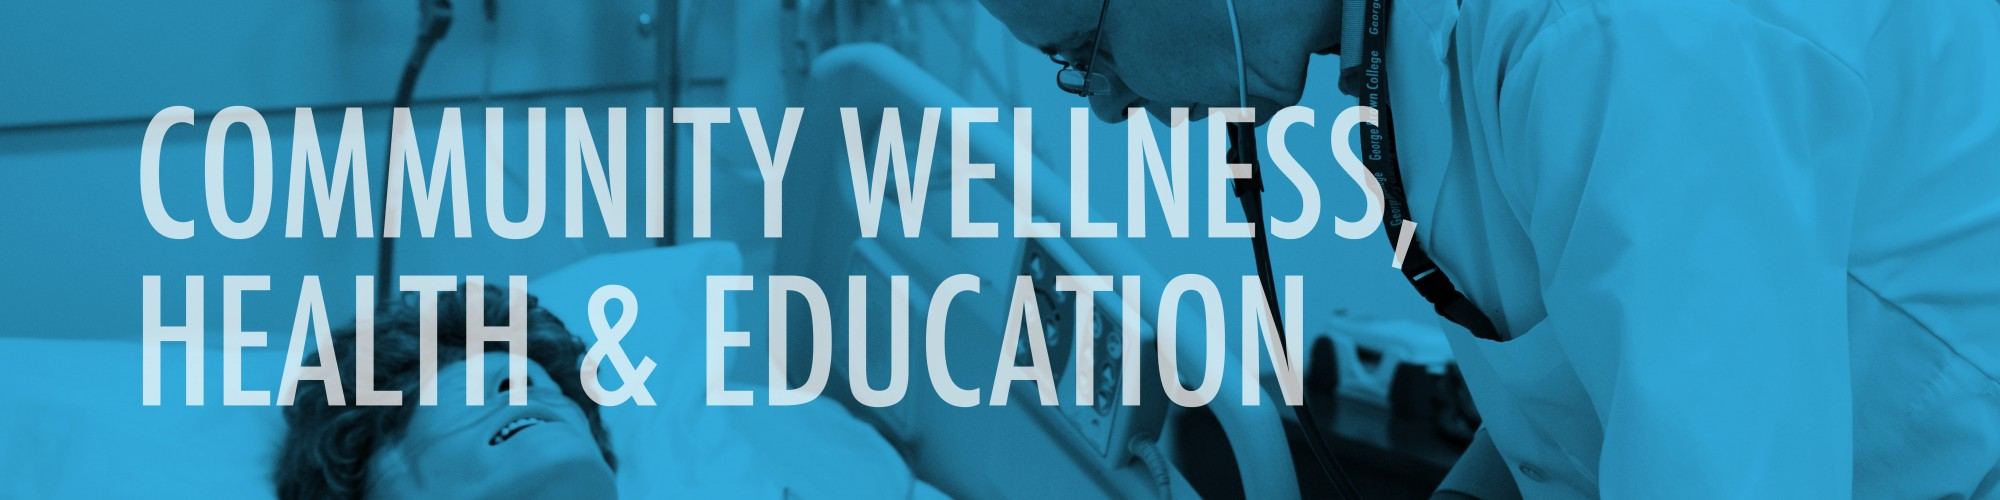 Community Wellness Health and Education